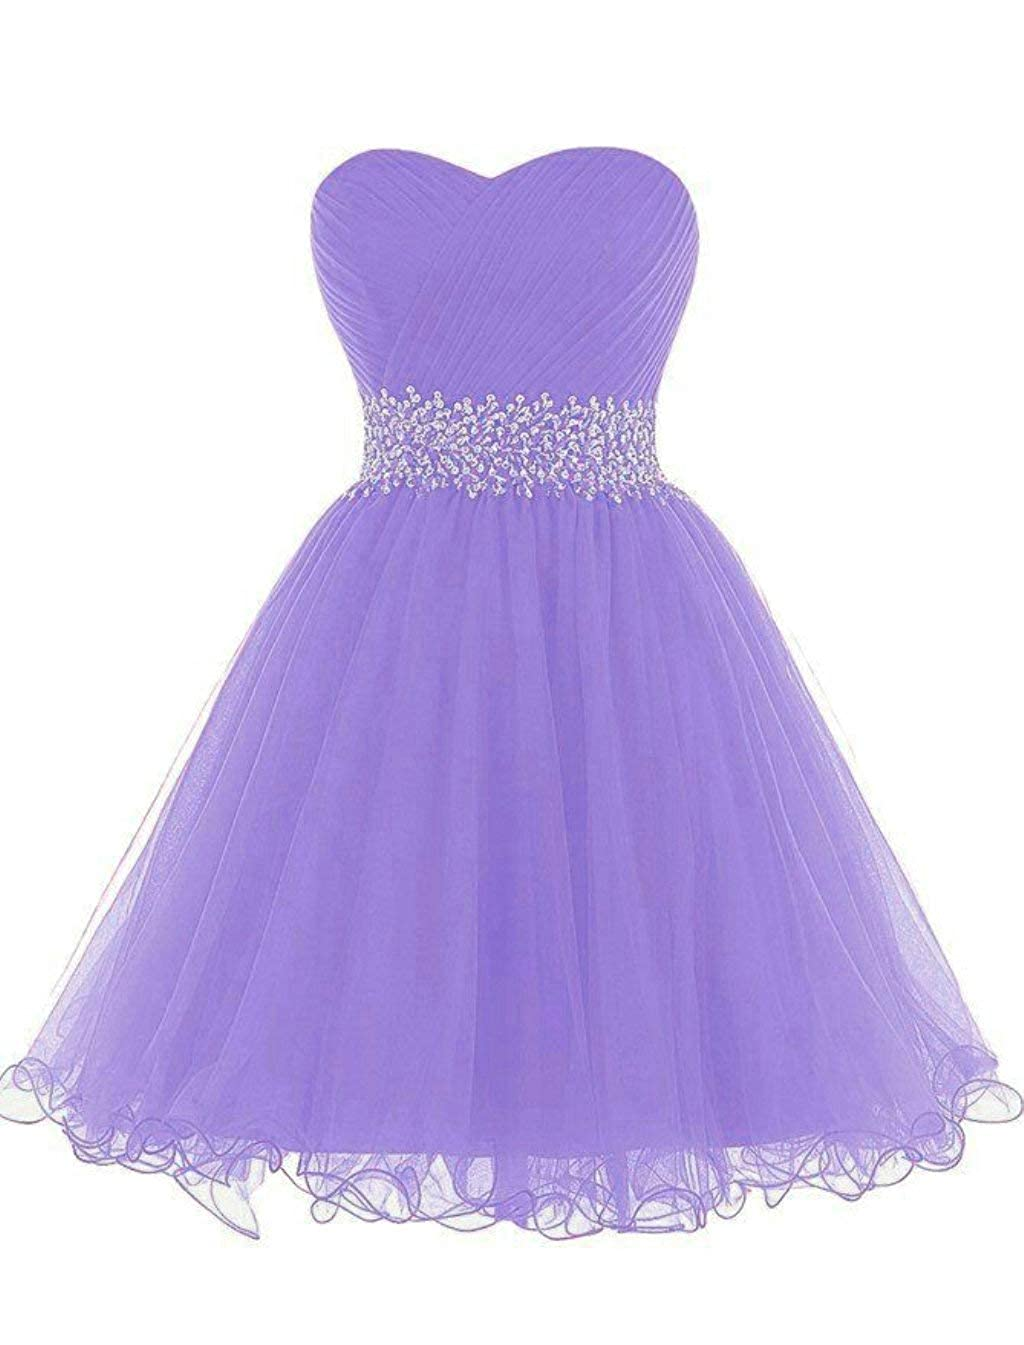 Lavender Vantexi Women's Beaded Tulle Short Prom Bridesmaid Dress Formal Party Gown